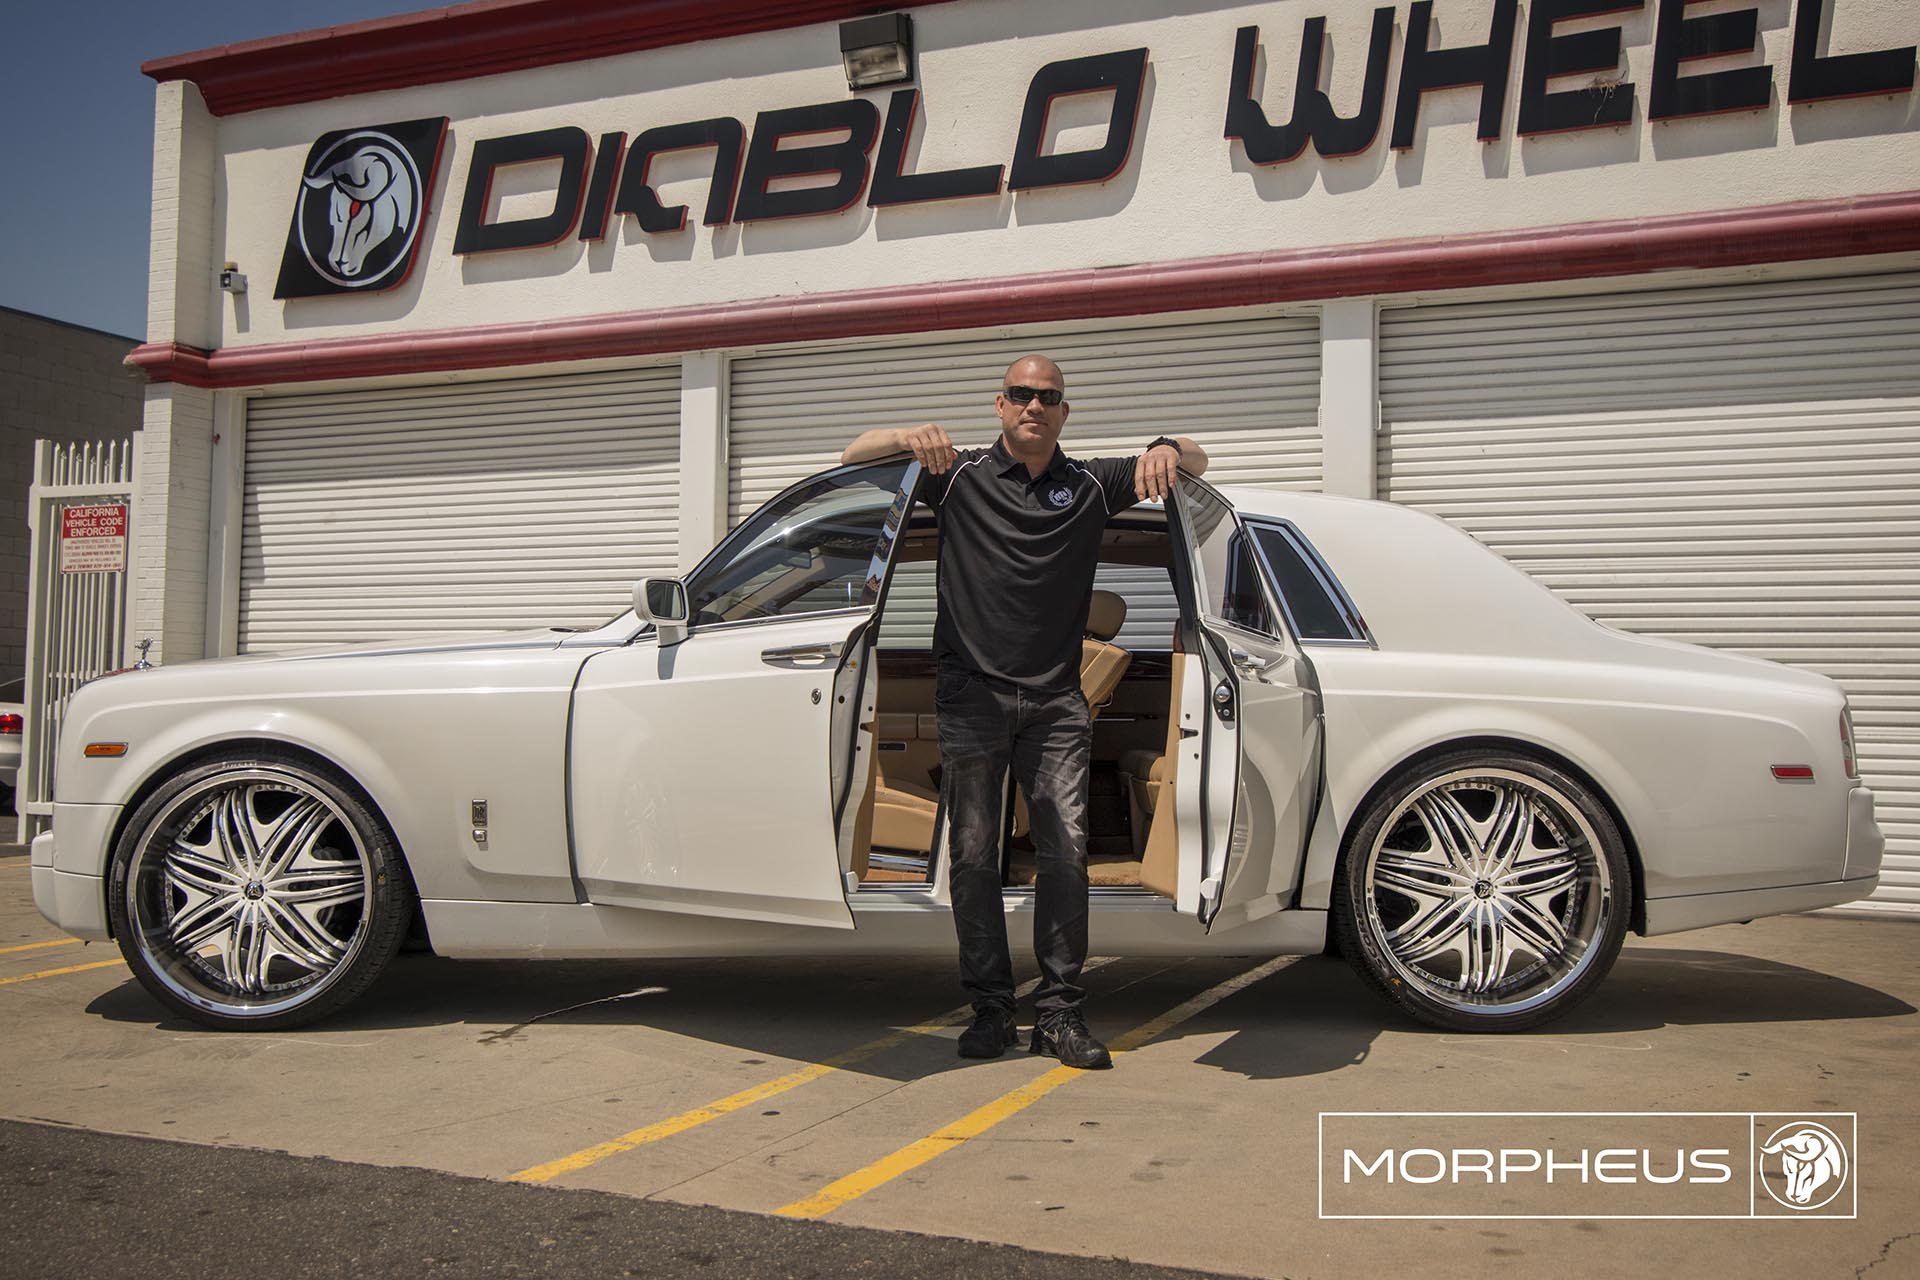 Chrome Diablo Morpheus Wheels on a Rolls Royce Phantom VII - Featuring Tito Ortiz